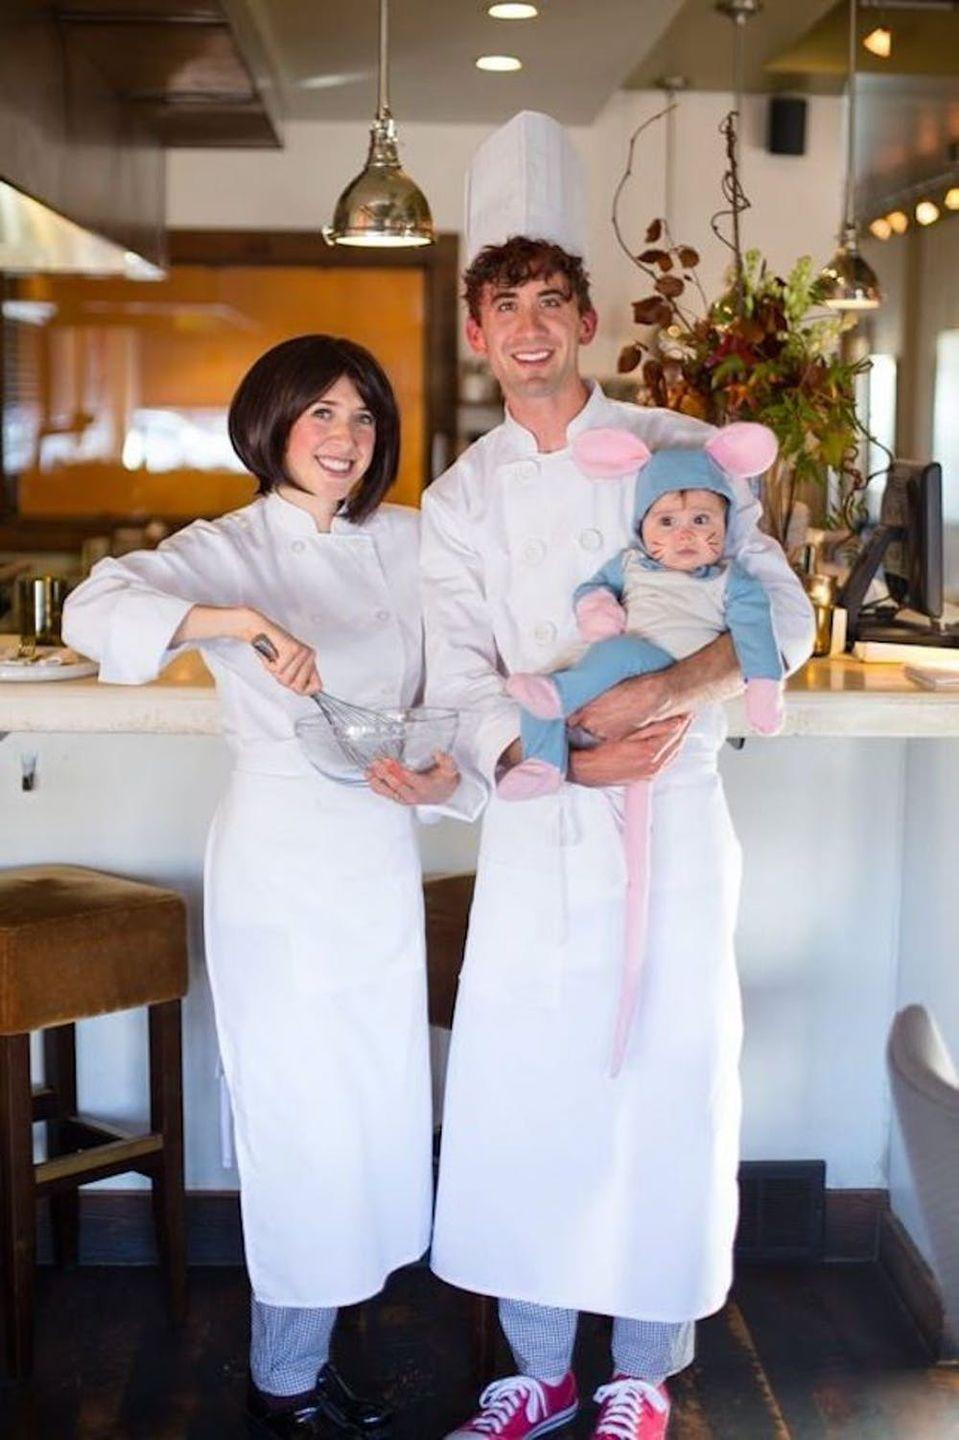 """<p>Chef hats, aprons, and a cute little mouse are all you need to look like you stepped out of this Pixar movie.</p><p><strong>Get the tutorial at <a href=""""http://thehouseofcornwall.blogspot.com/2014/10/bon-appetit_31.html"""" rel=""""nofollow noopener"""" target=""""_blank"""" data-ylk=""""slk:The House of Cornwall"""" class=""""link rapid-noclick-resp"""">The House of Cornwall</a>.</strong> </p>"""